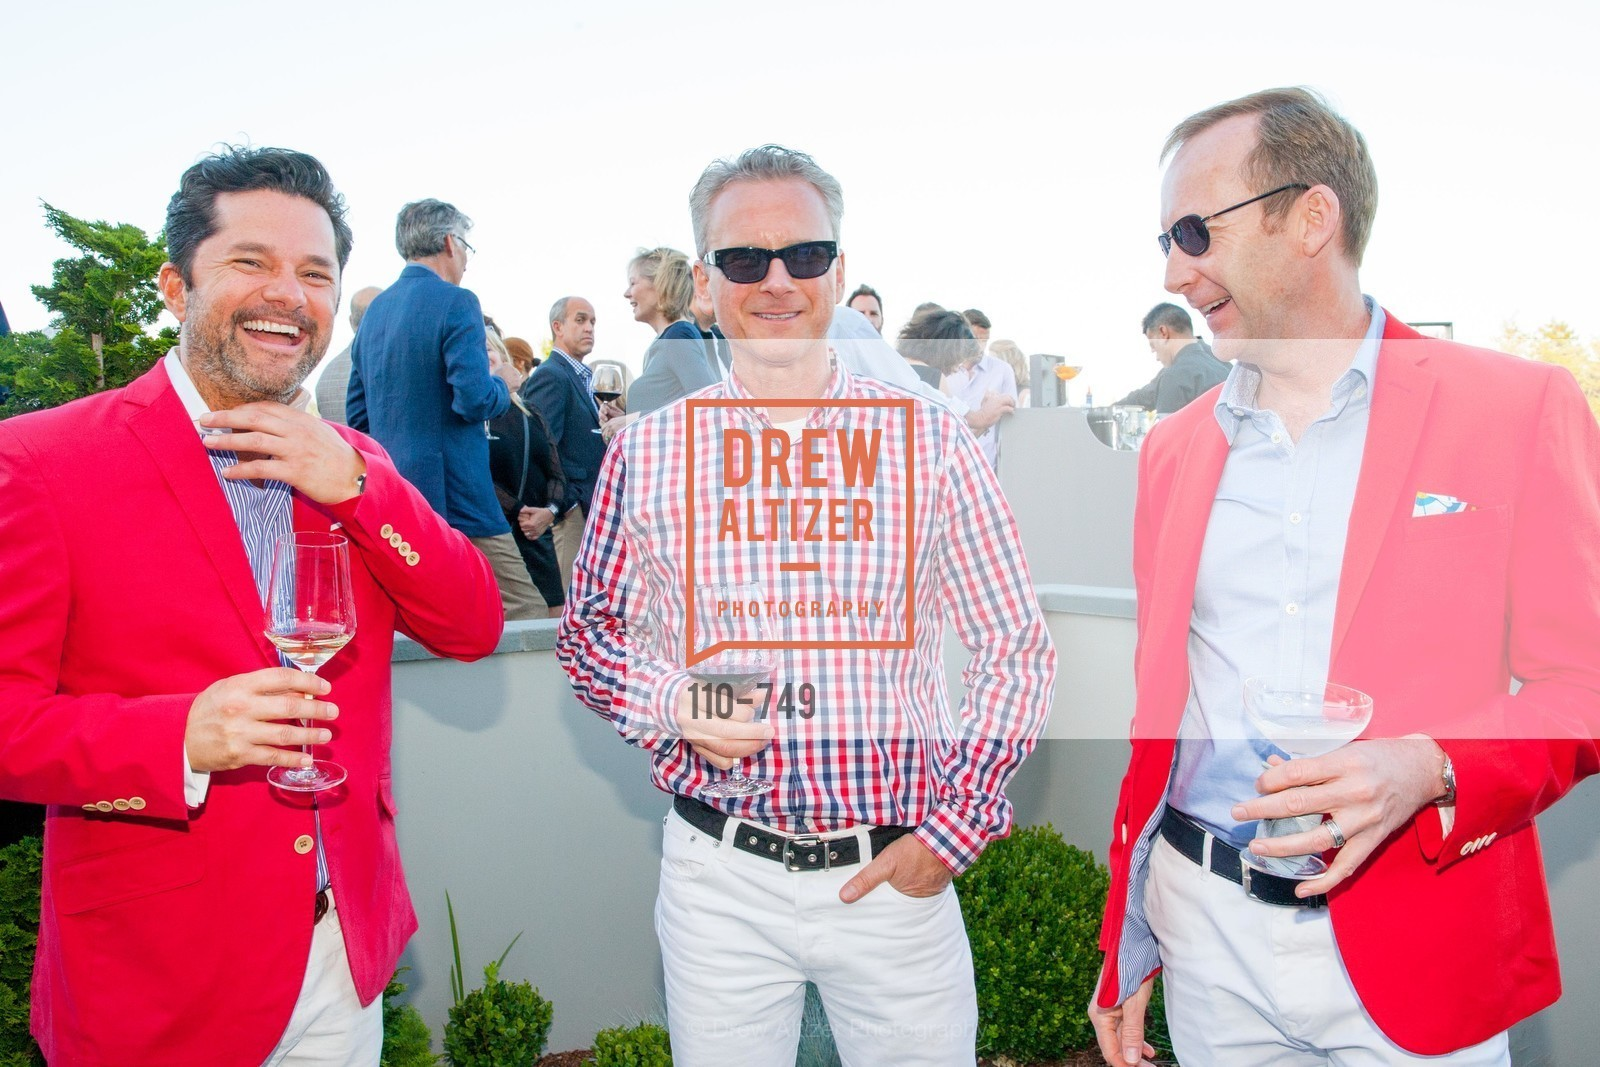 Warren Chase, Oliver Clode, James Schroeder, PETER COPPING Meets and Greets OSCAR DELA RENTA Clients and Associates at NEIMAN MARCUS, US, May 23rd, 2015,Drew Altizer, Drew Altizer Photography, full-service agency, private events, San Francisco photographer, photographer california